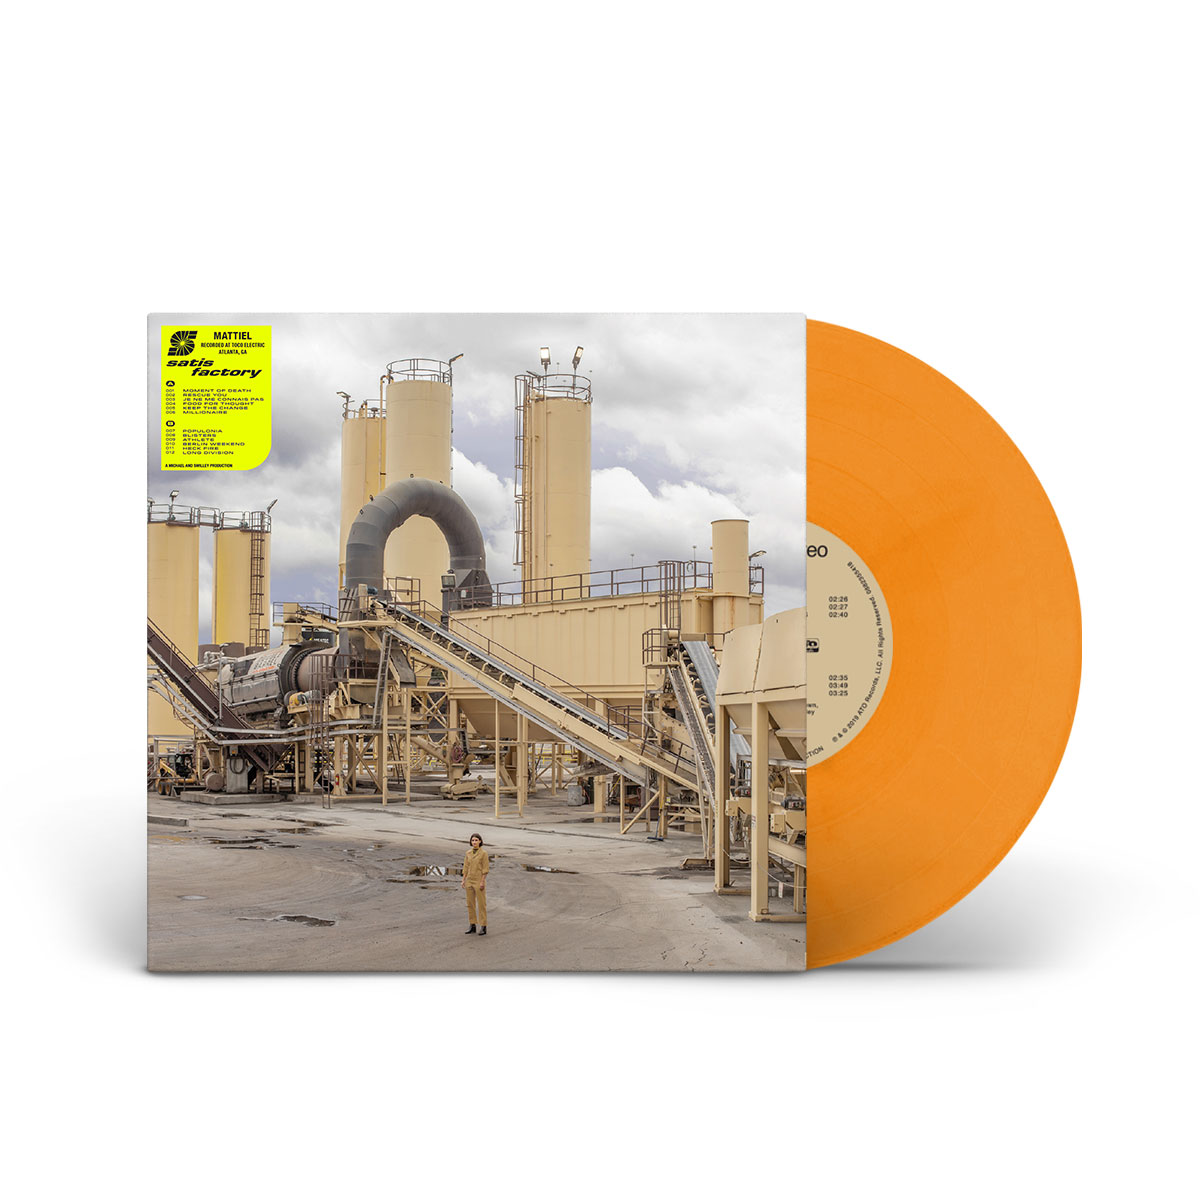 Mattiel - Satis Factory Limited Edition Safety Vest Orange LP